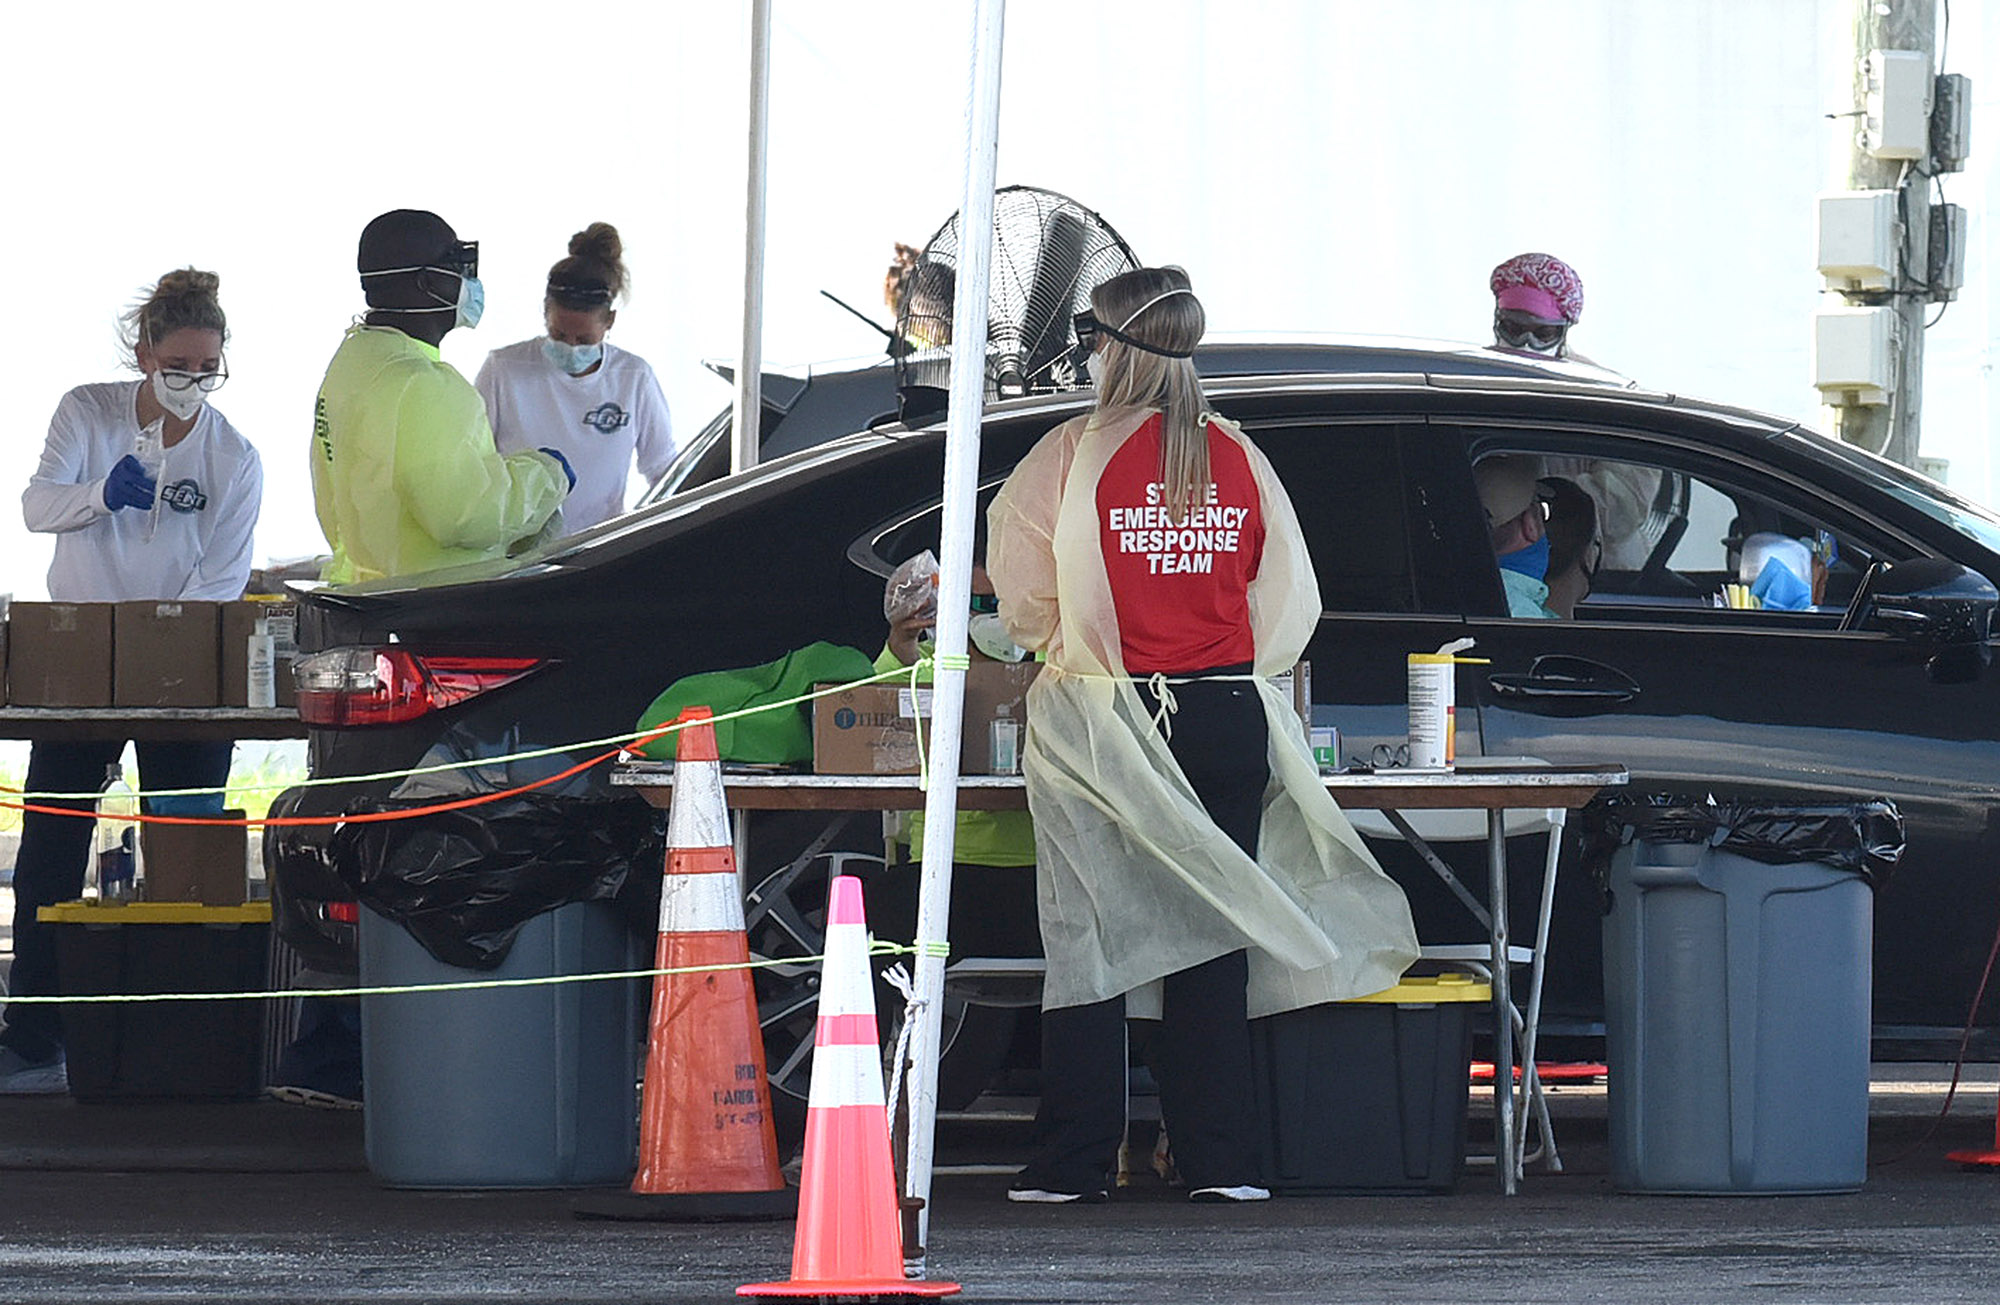 Health care workers perform Covid-19 testing at a drive-through site at Eastern Florida State College on October 9, in Palm Bay, Florida.